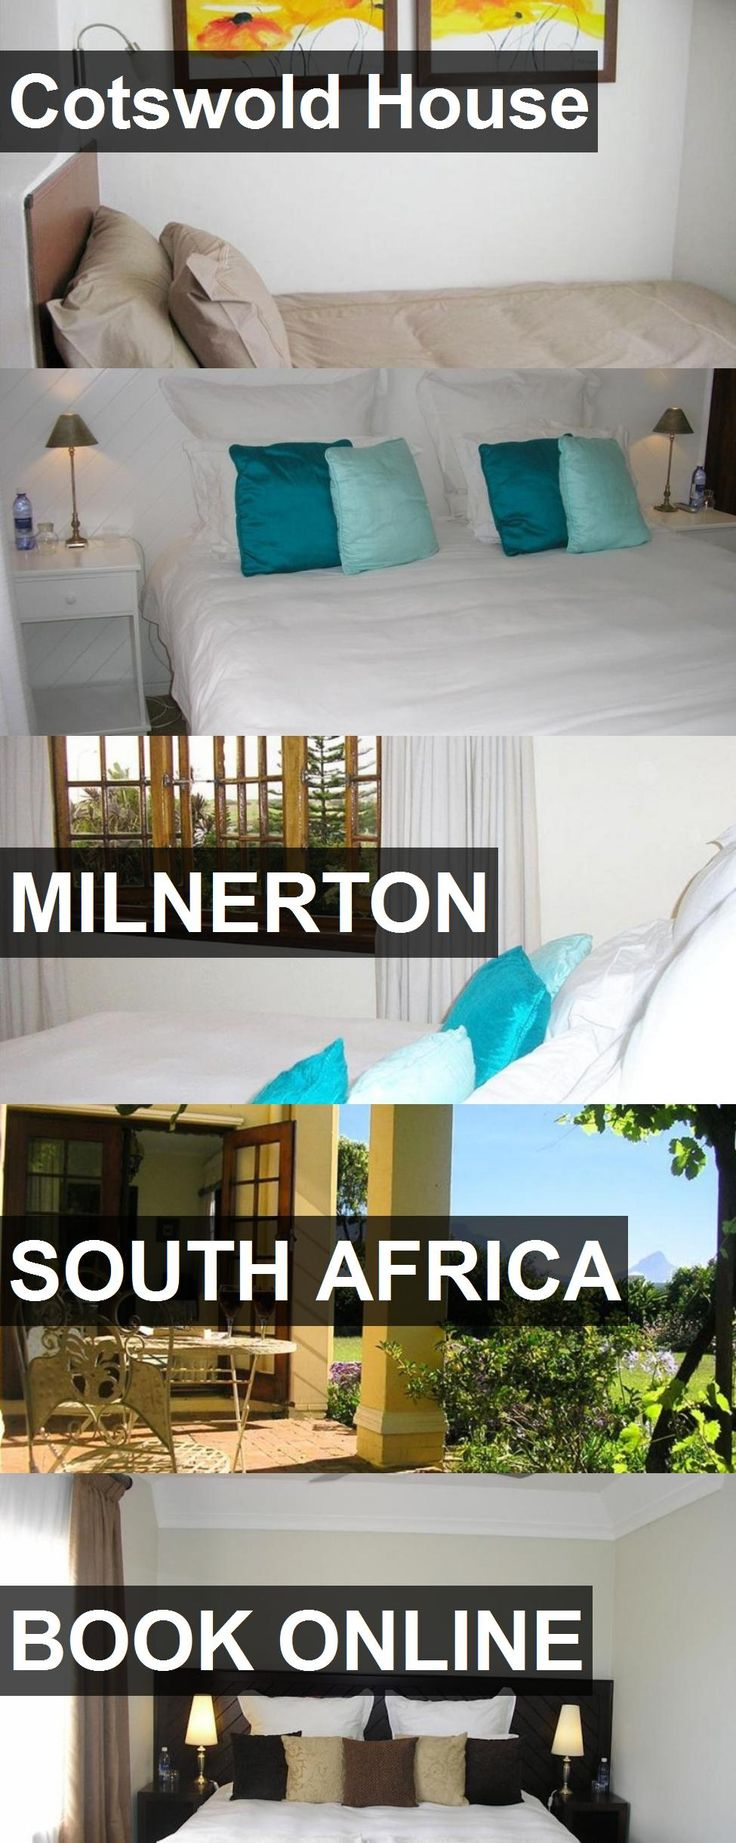 Hotel Cotswold House in Milnerton, South Africa. For more information, photos, reviews and best prices please follow the link. #SouthAfrica #Milnerton #CotswoldHouse #hotel #travel #vacation